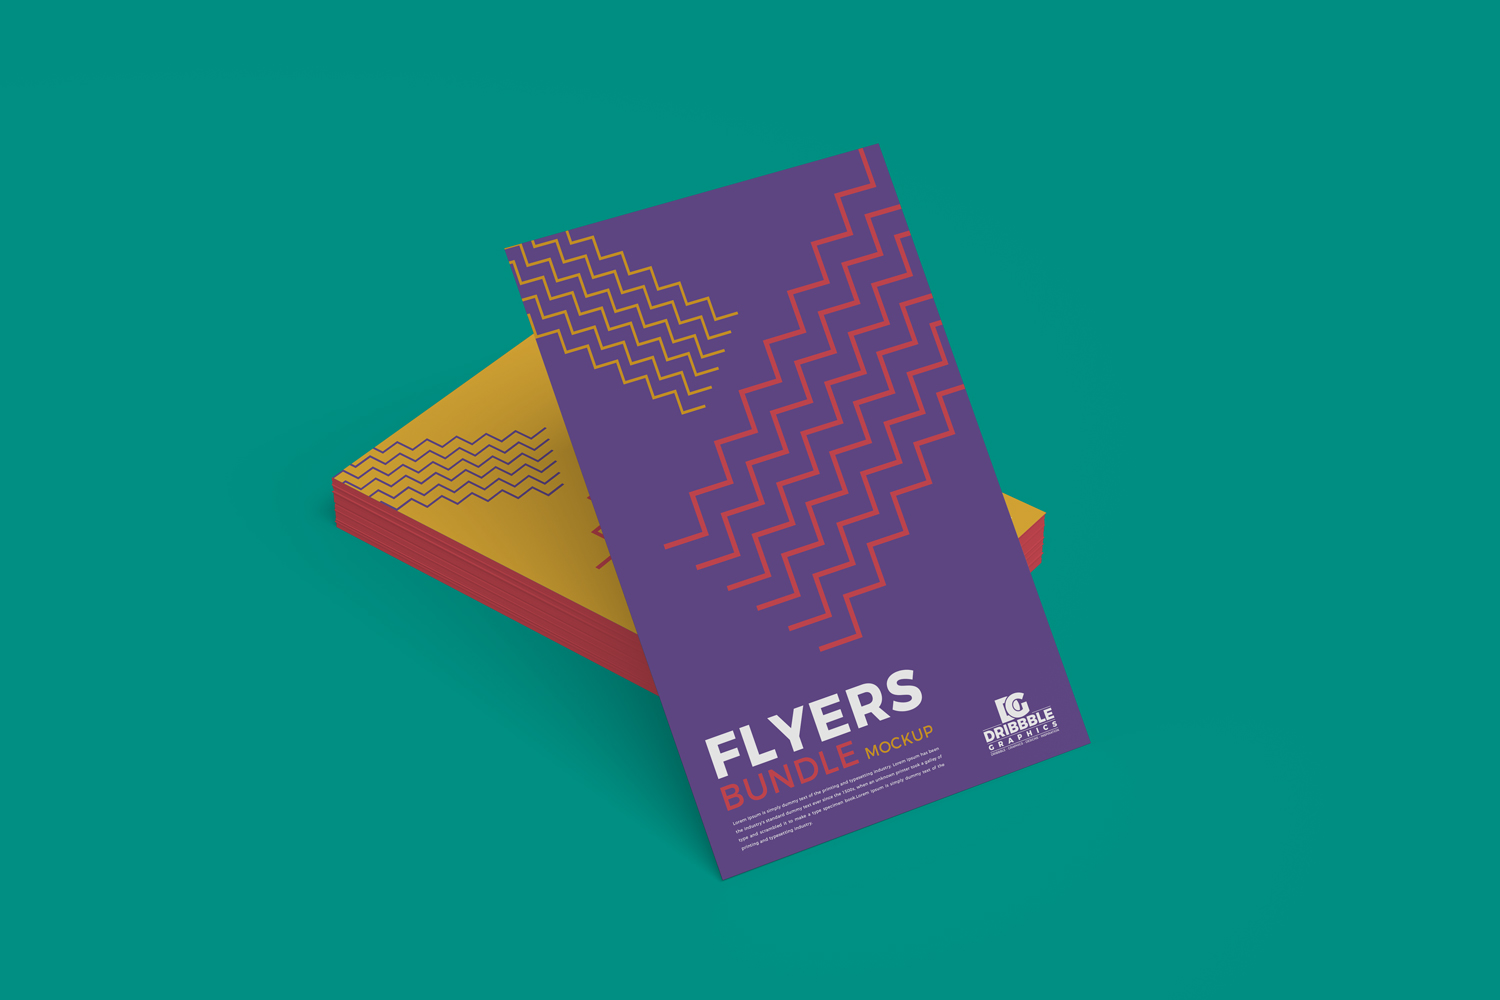 Free-Flyers-Bundle-Mockup-PSD-For-Branding-1